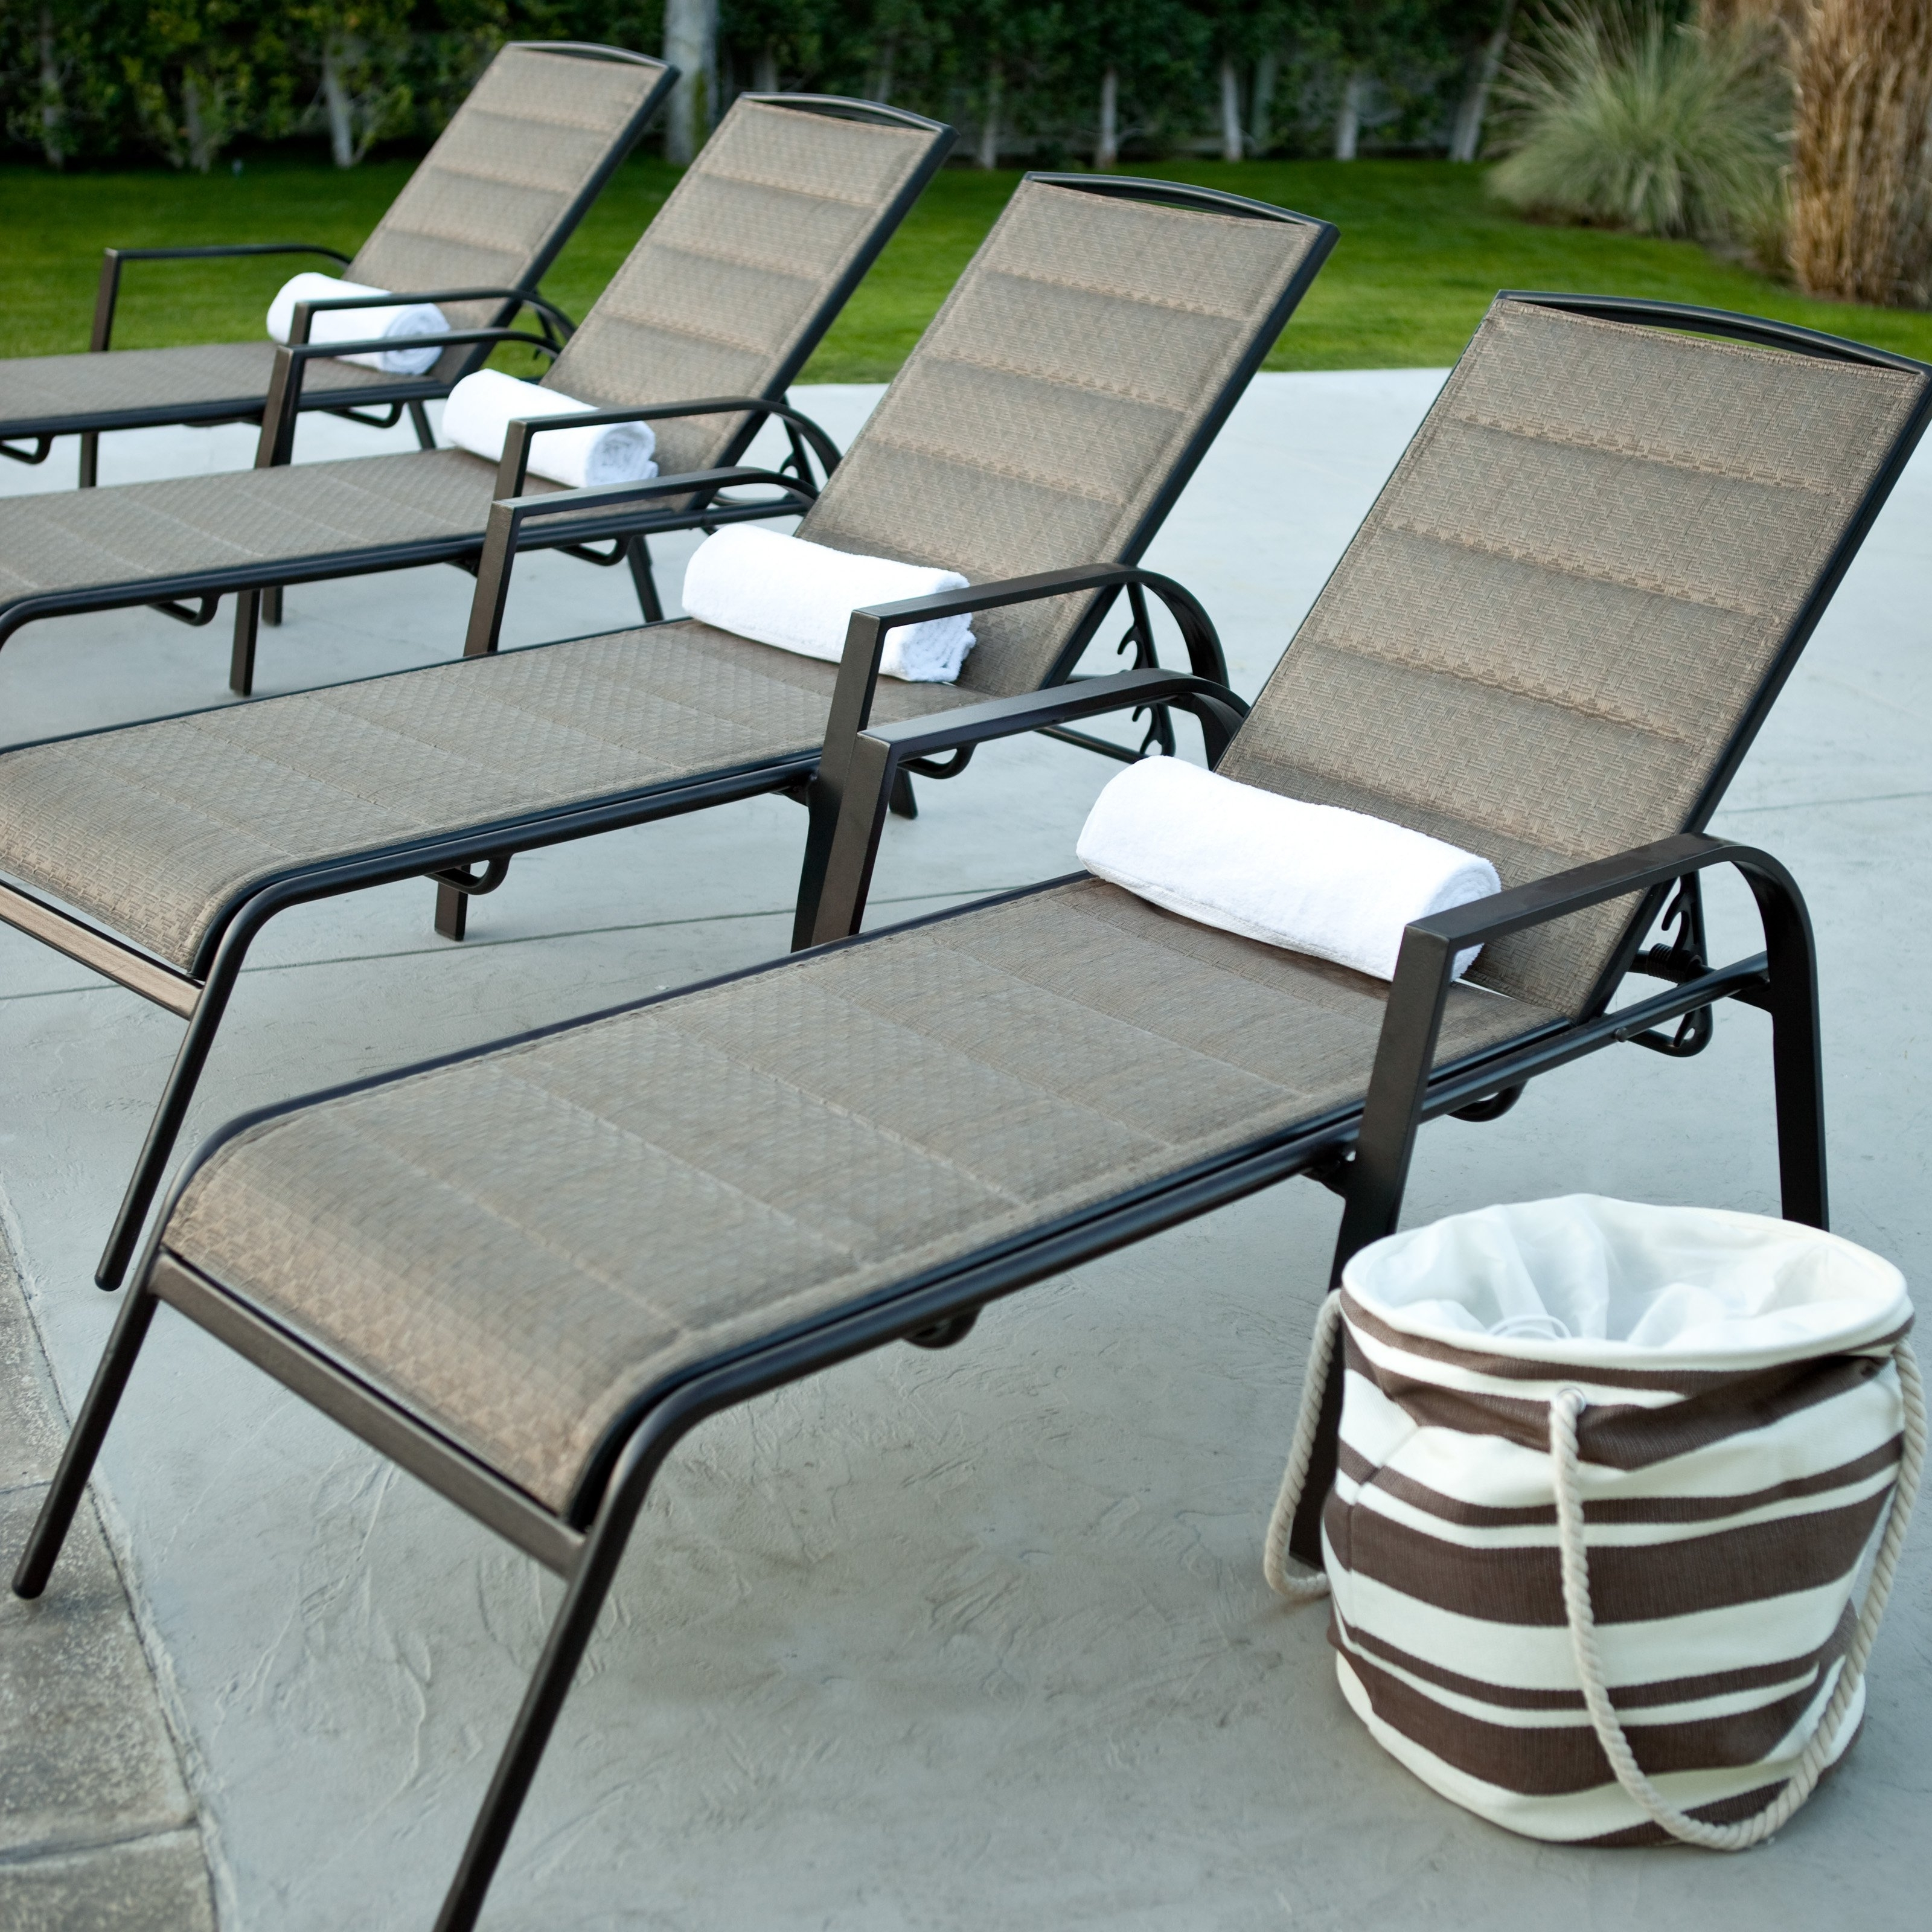 Favorite Furniture : Cozy Aluminum Outdoor Aluminum Furniture With Black For Black Chaise Lounge Outdoor Chairs (View 13 of 15)